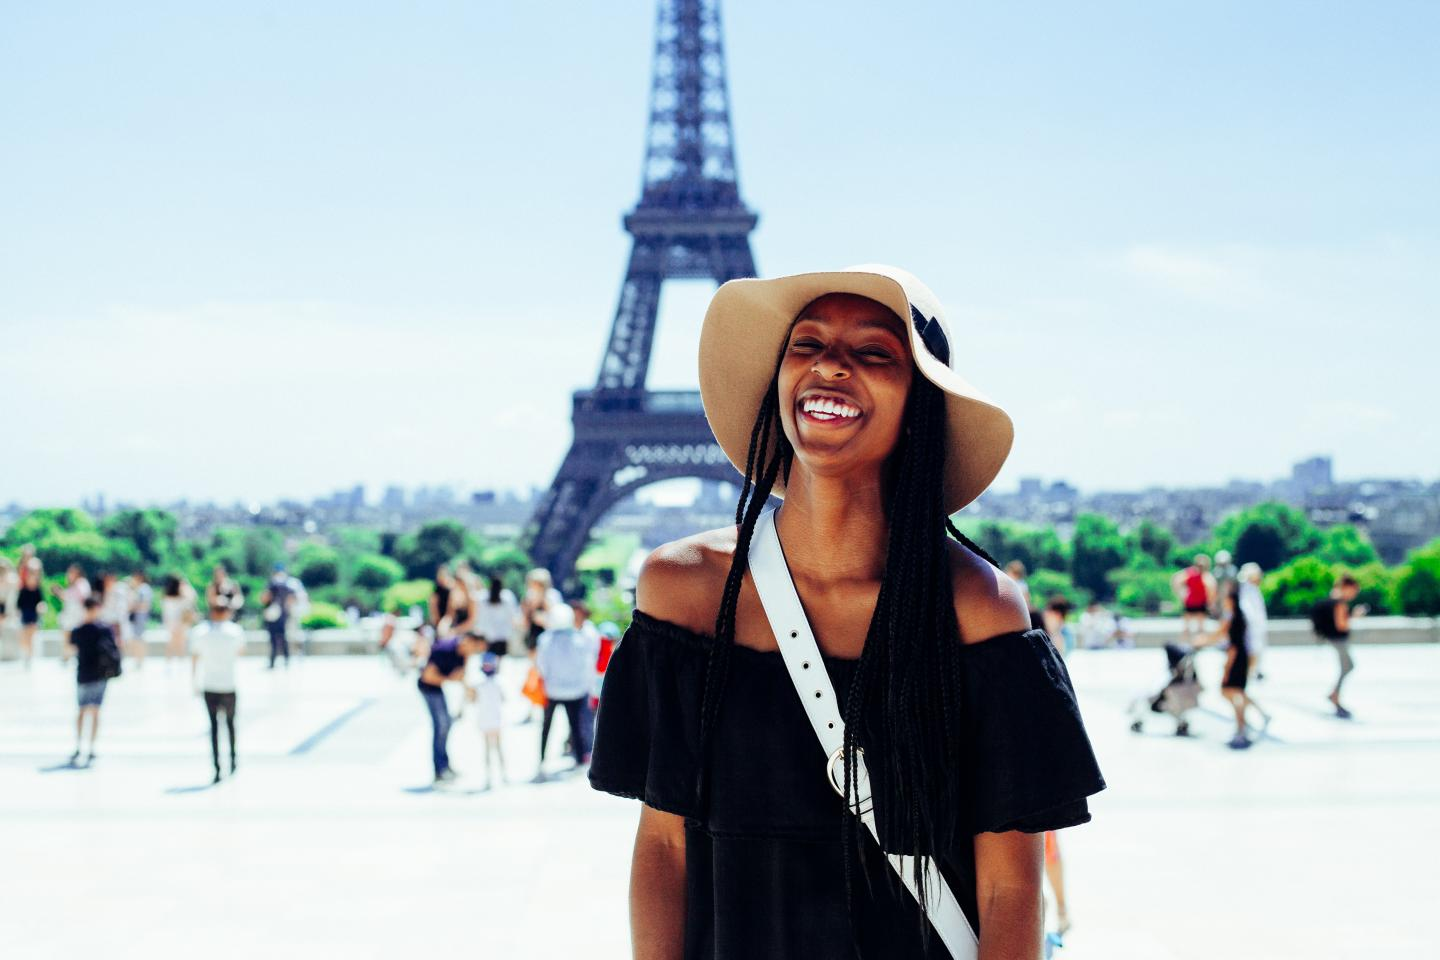 College Girl in Paris